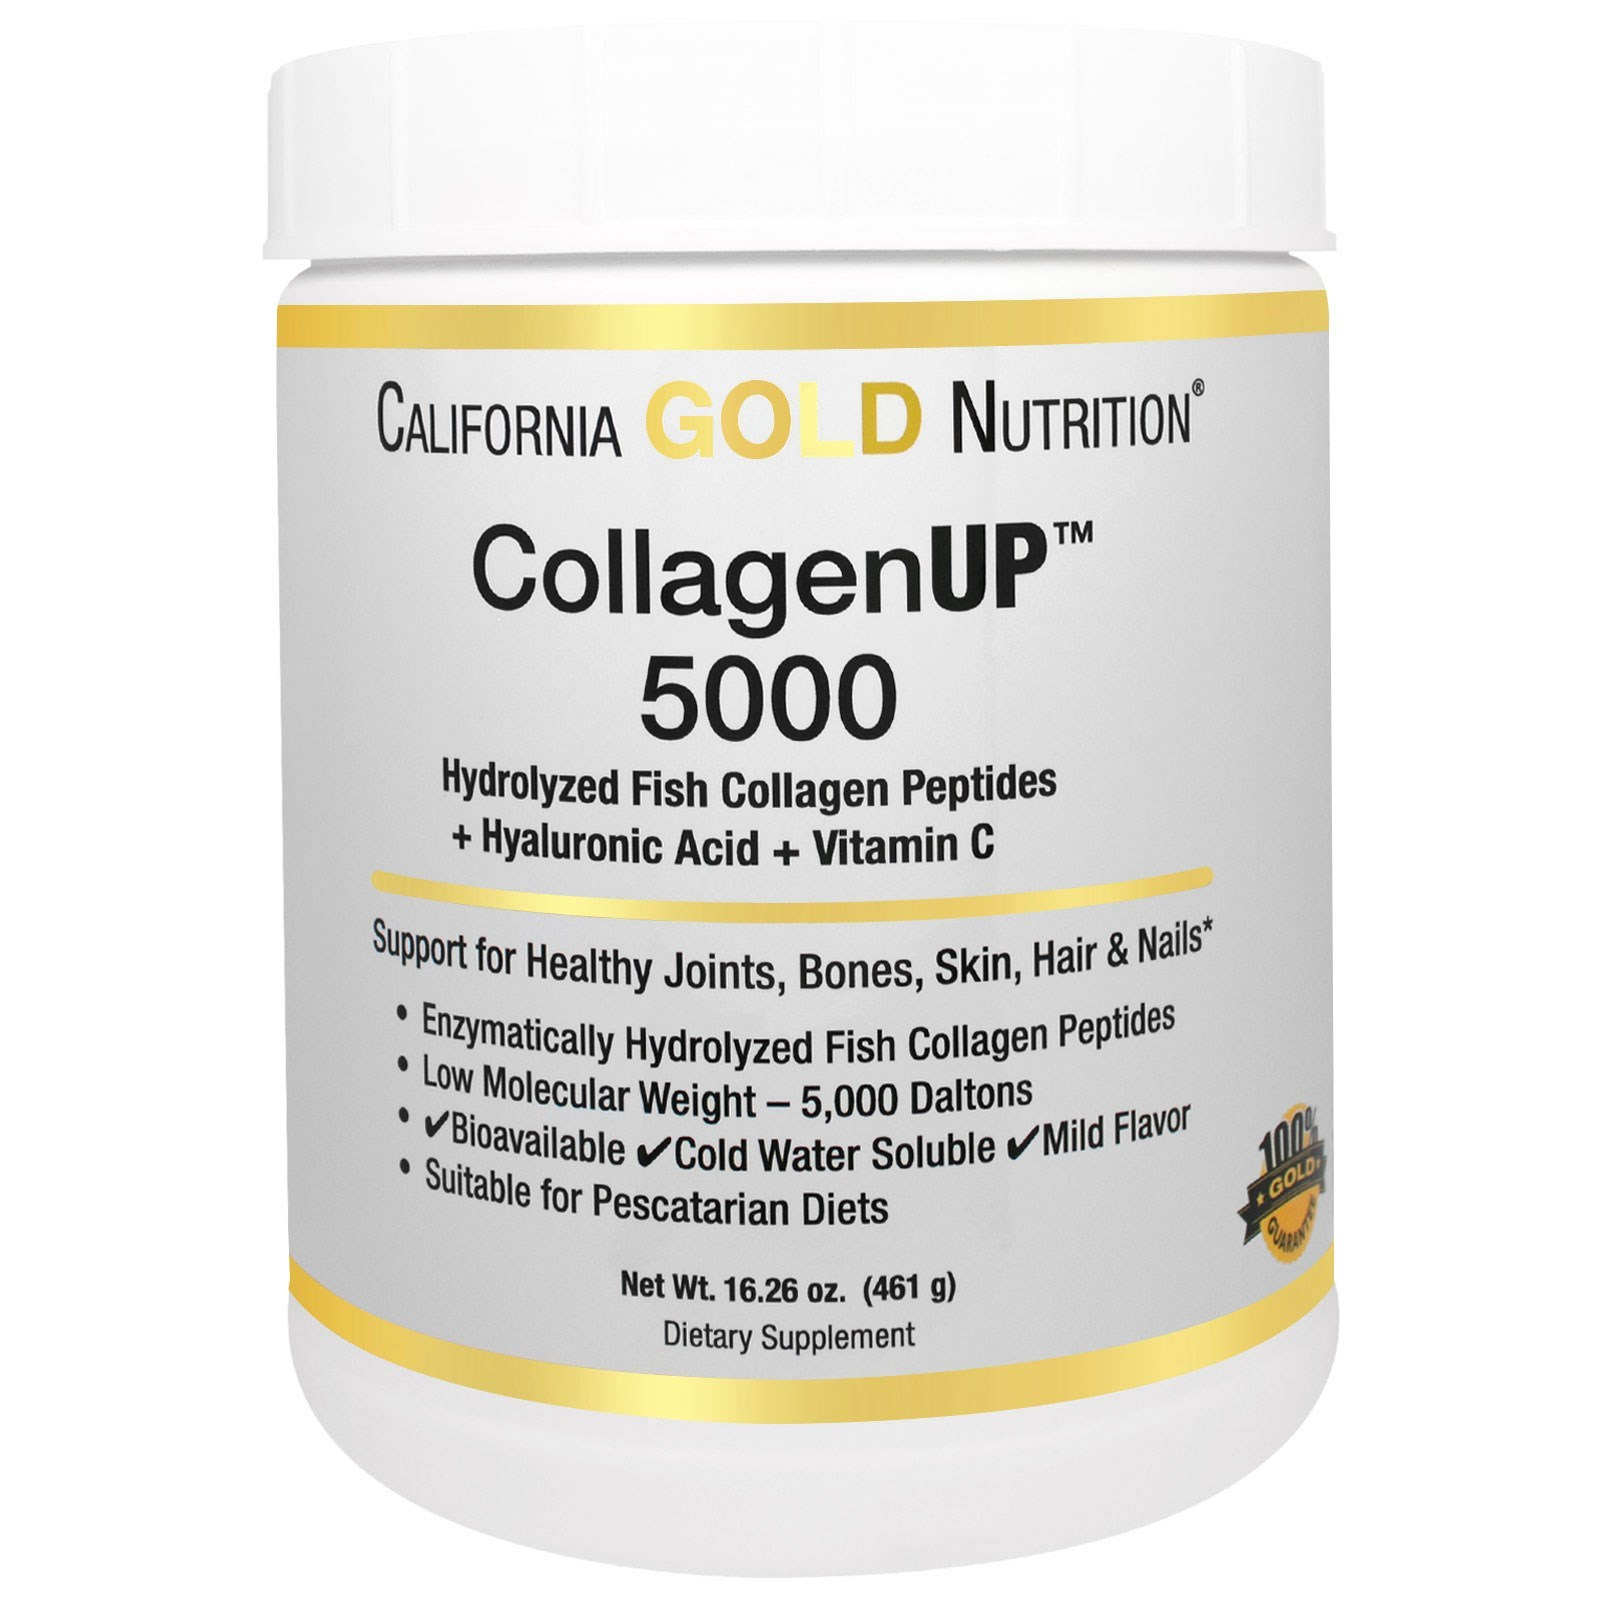 California Gold Nutrition, CollagenUP™ 5000, Marine-Sourced Collagen Peptides + Hyaluronic Acid & Vitamin C, порошок (461 г)